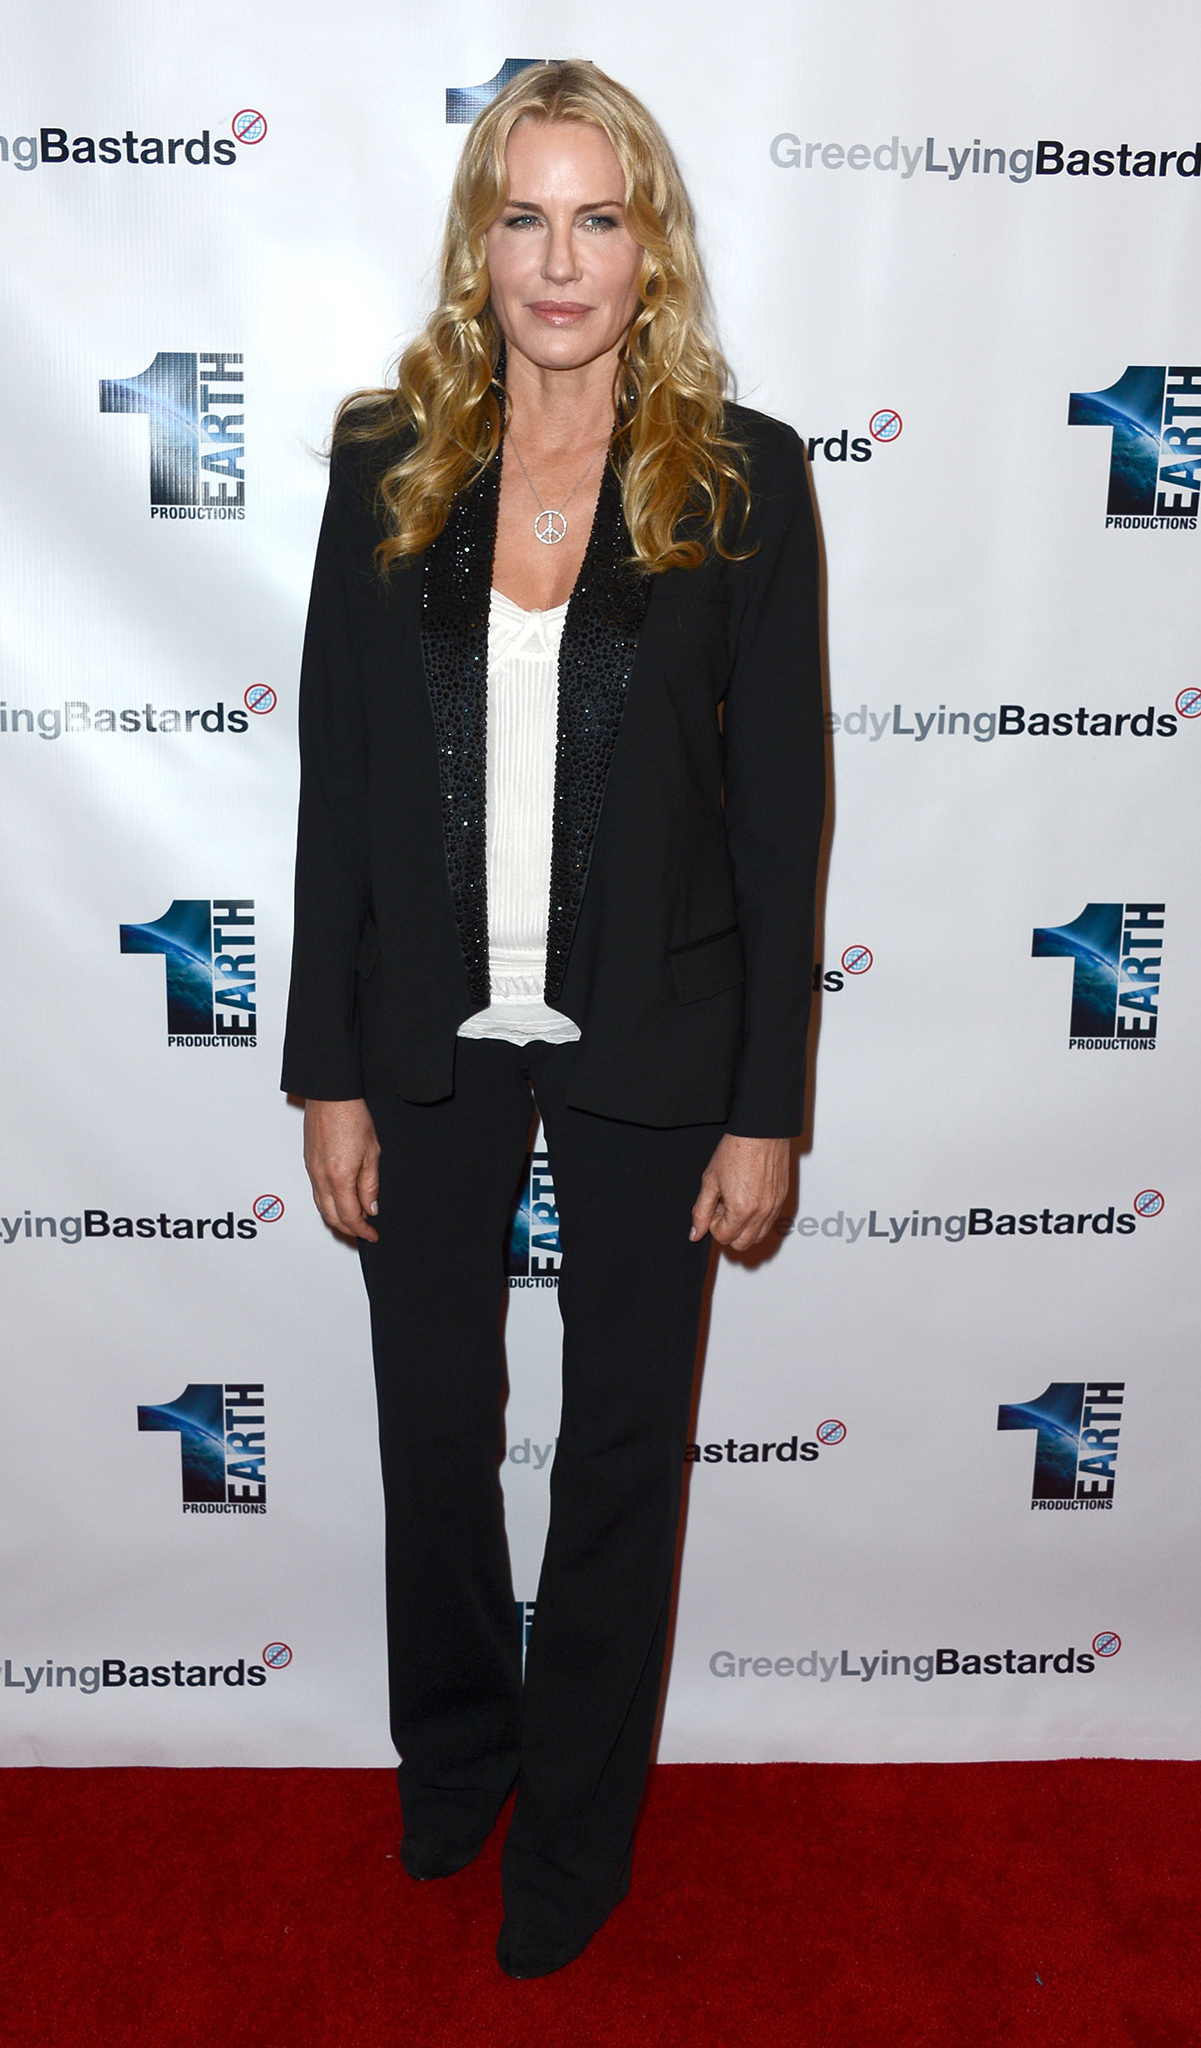 Daryl Hannah at a movie screening in March. (Getty Images)